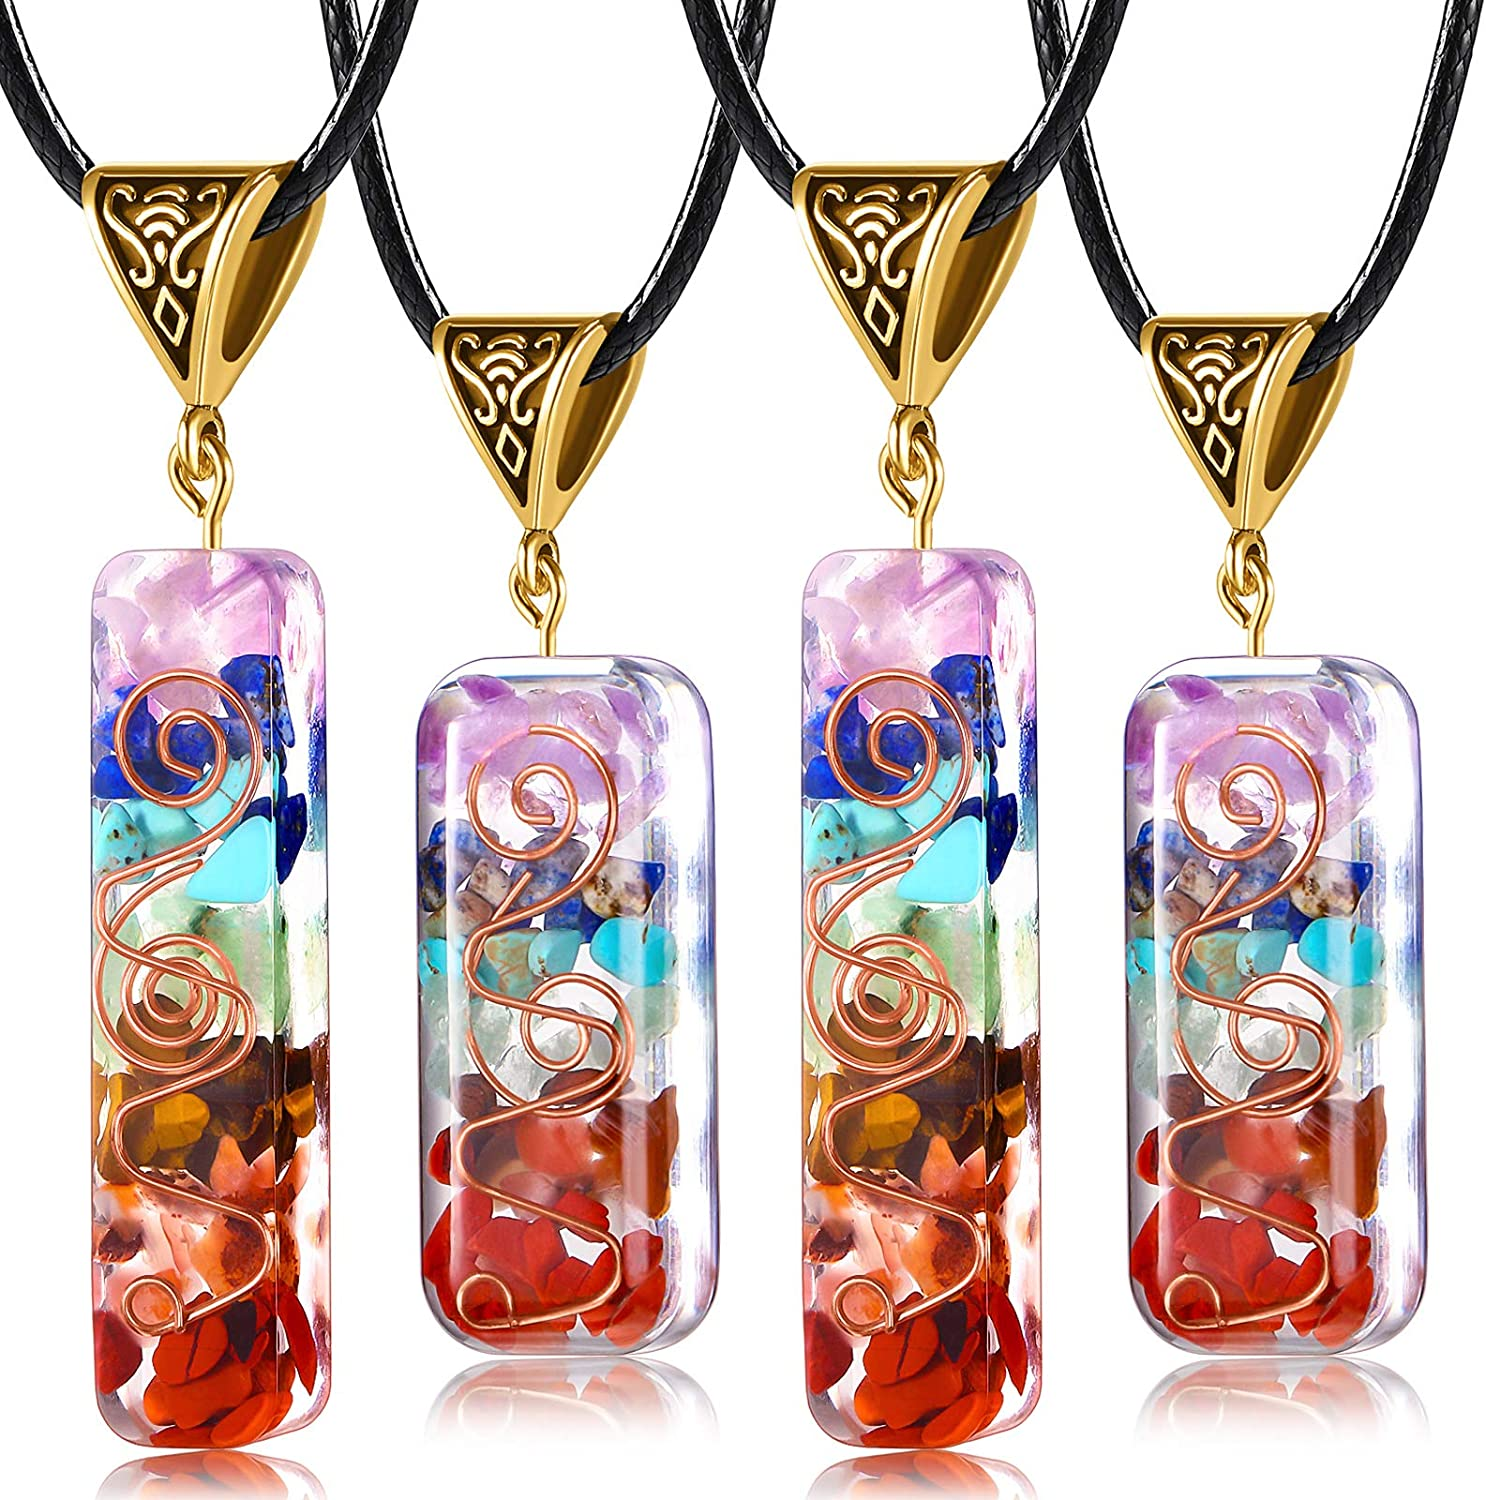 Yaomiao Healing Energy Crystal Pendant Reiki Healing Orgone Stones Necklace Generator Emotional Body Purification Pendant with Adjustable Cord for EMF Protection and Spiritual Healing